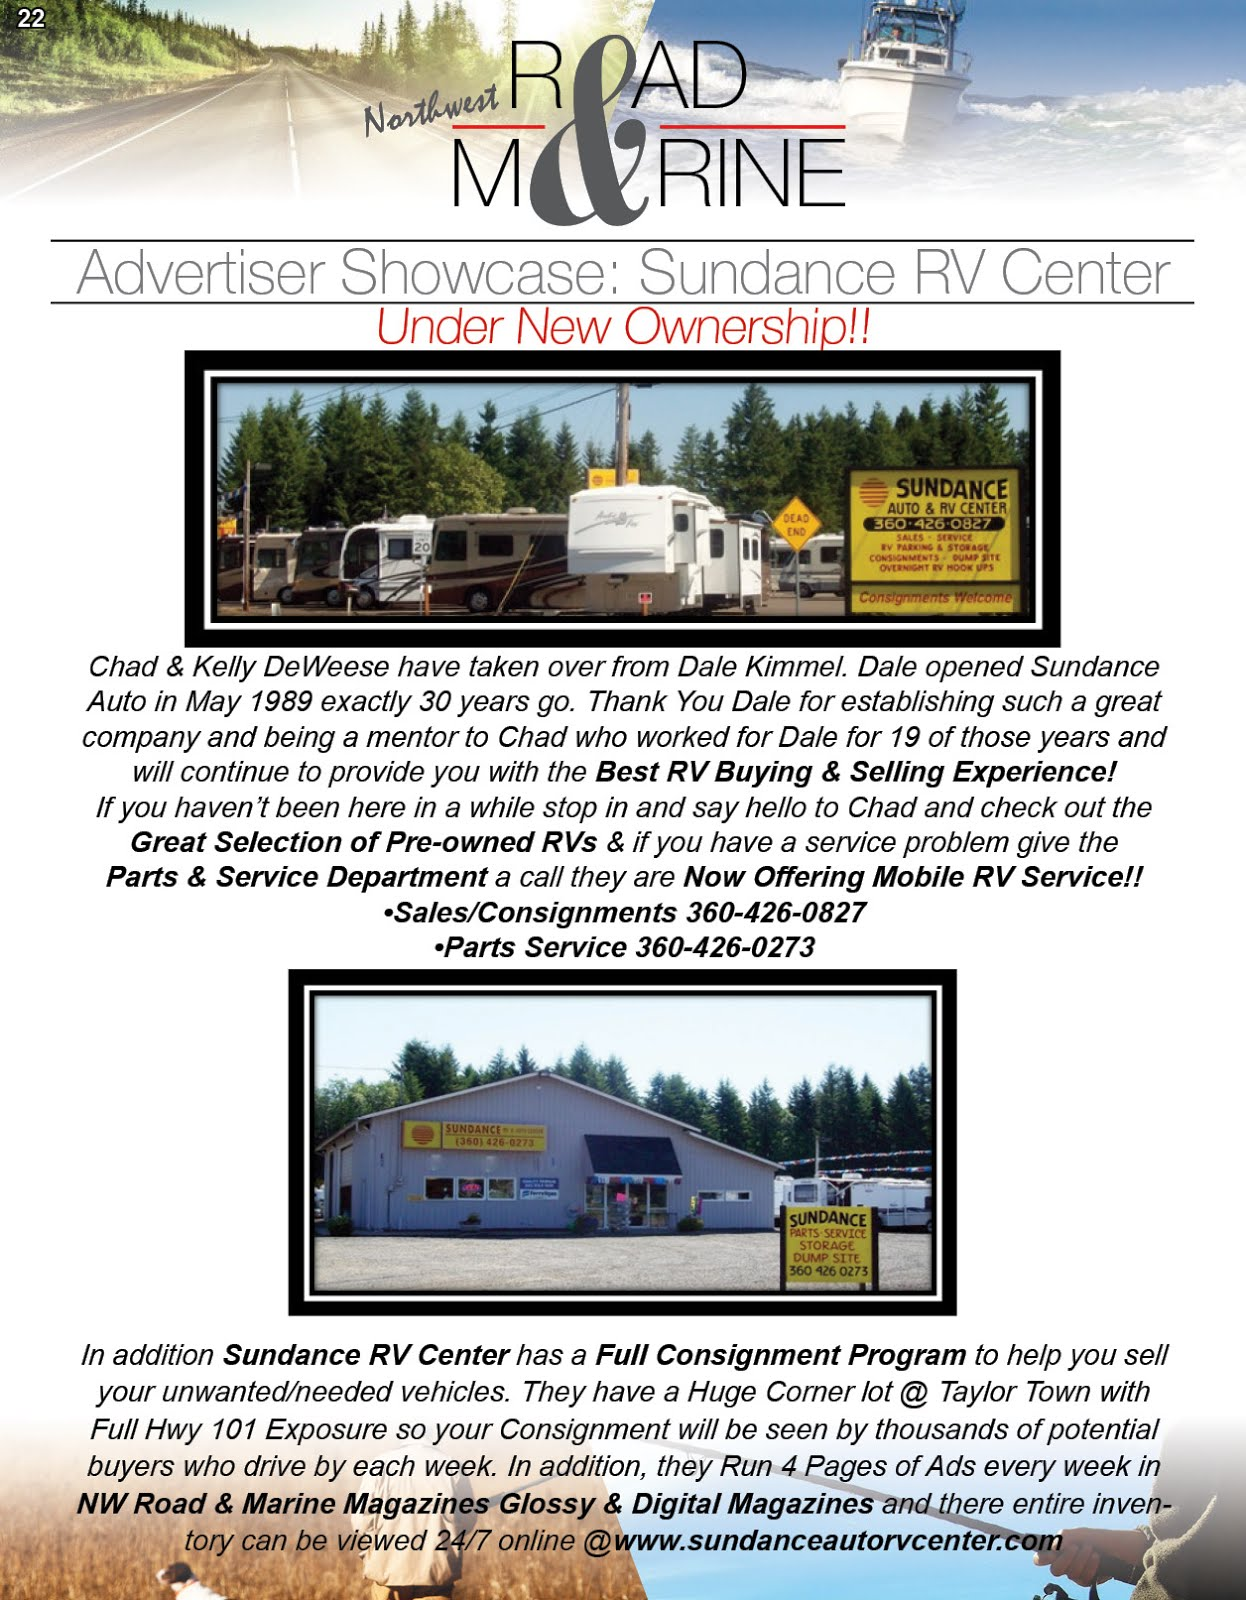 NW Road & Marine Advertiser Showcase: Sundance RV Center